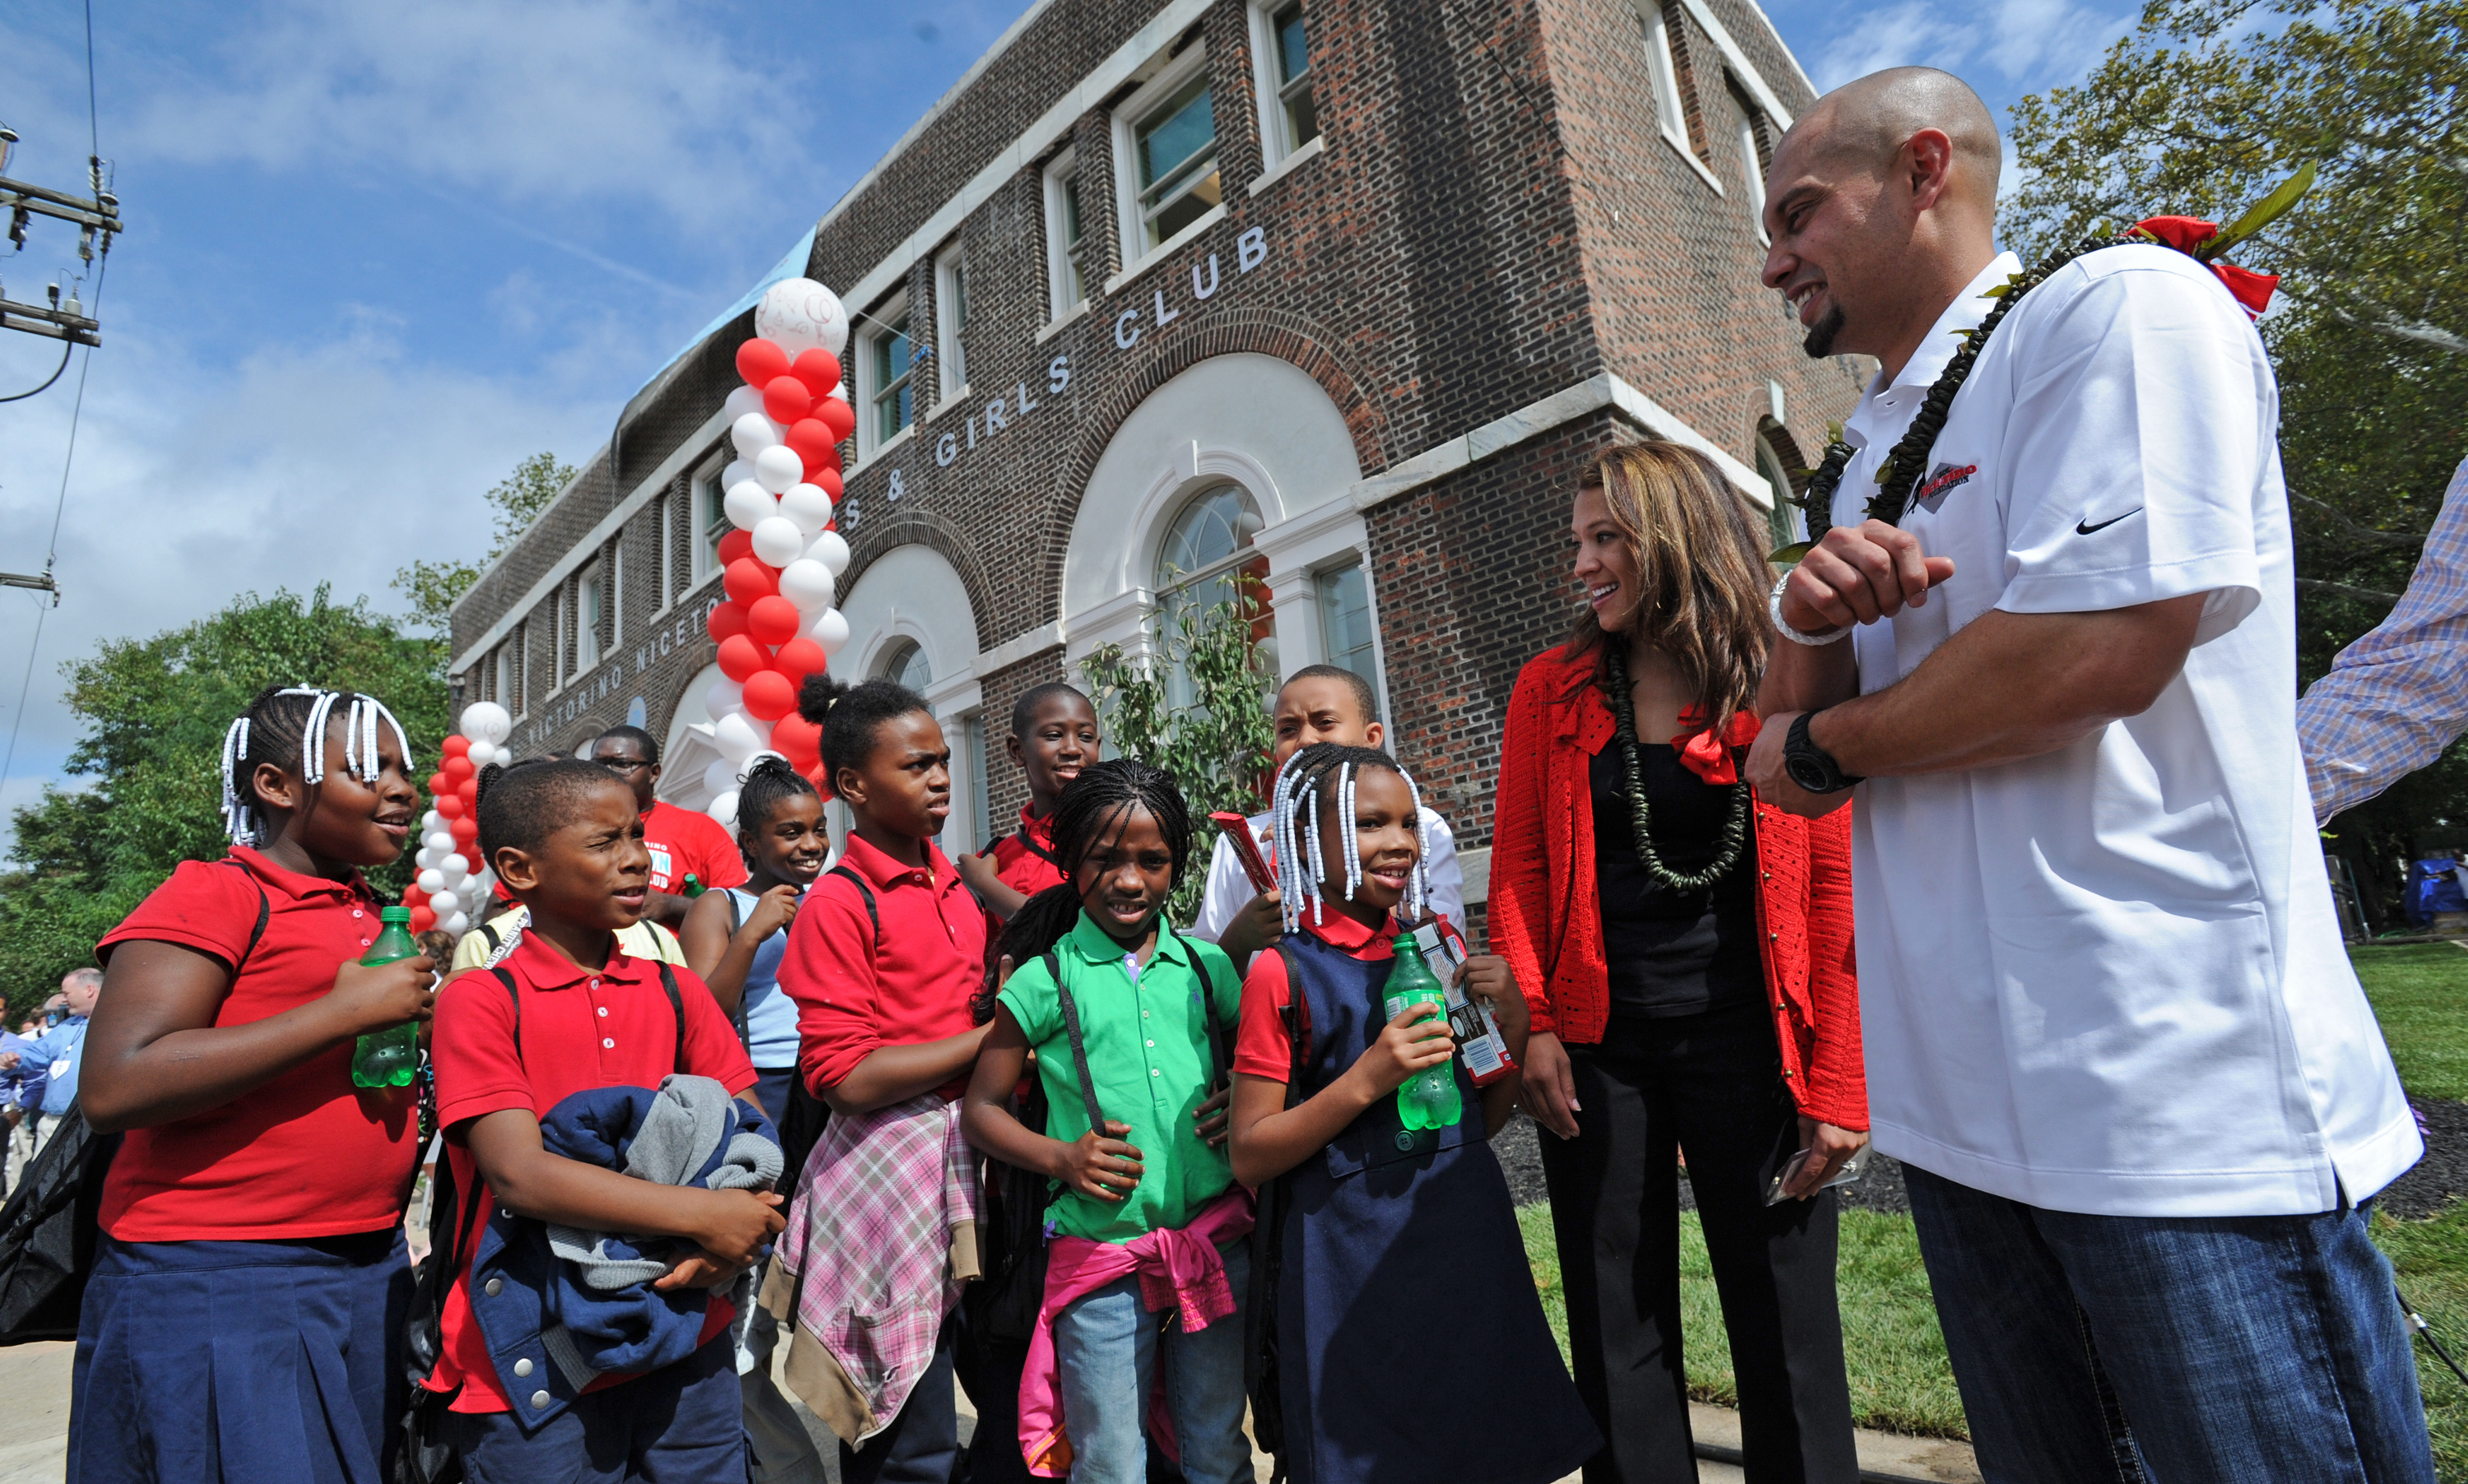 Nicetown kids with Melissa and Shane Victorino | Shane Victorino Foundation